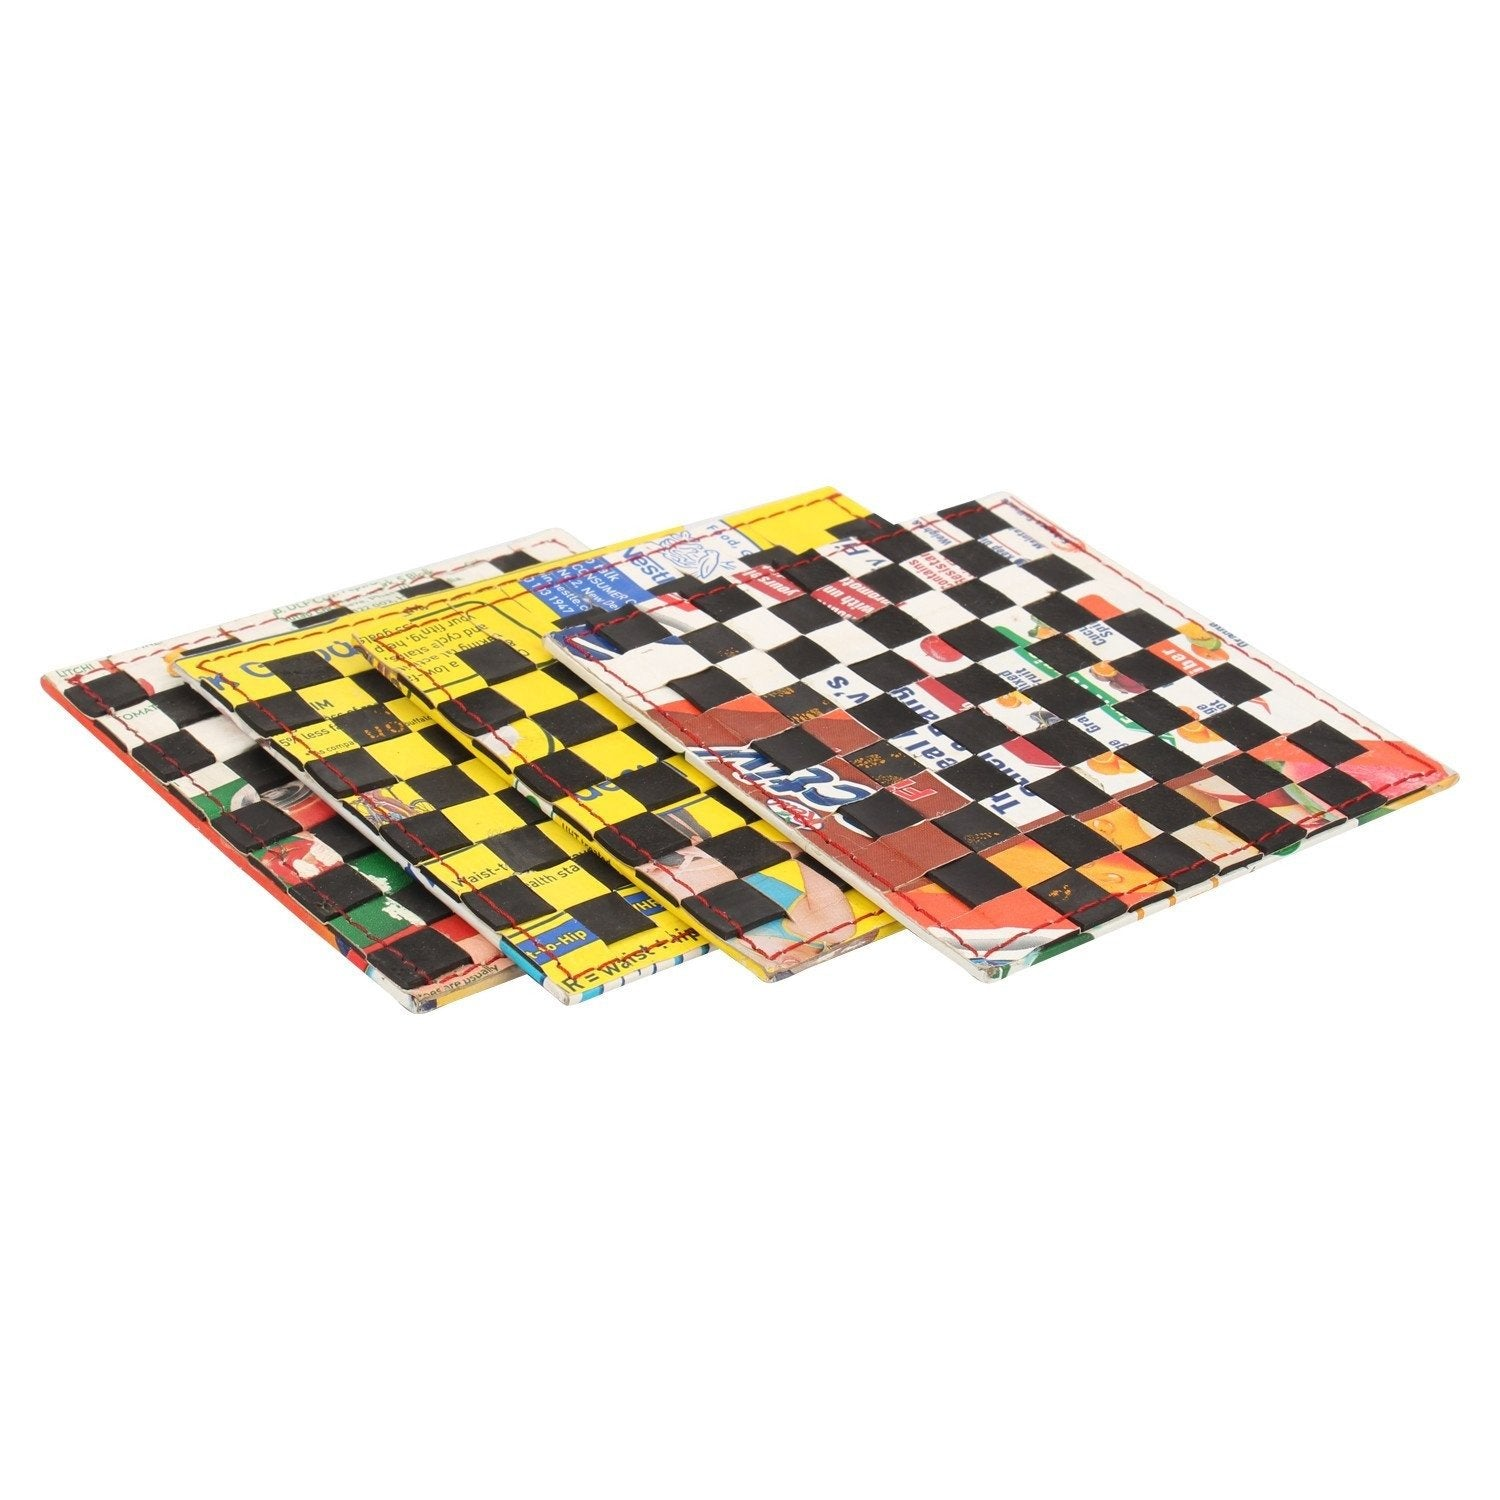 Chess coasters (Set of 4) - Buy Eco Friendly Products - Upycled, Organic, Fair Trade :: Green The Map